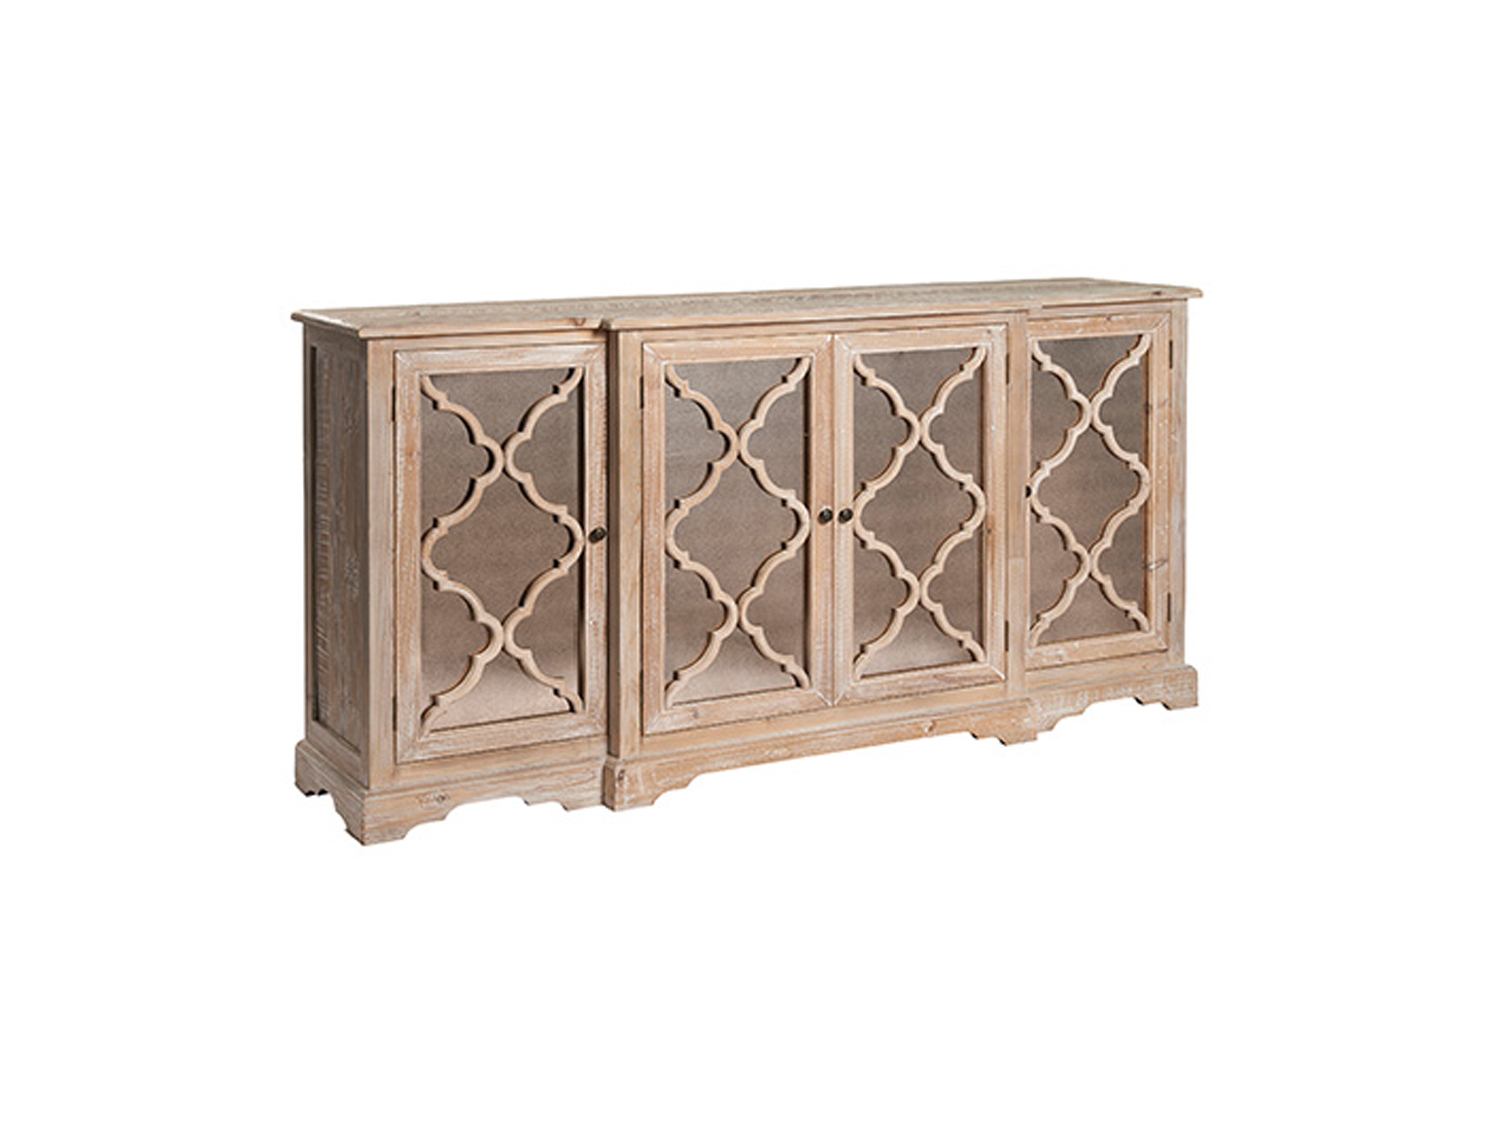 Acepello Lowery Four Door Sideboard From Dansk Intended For Ruskin Sideboards (View 1 of 20)